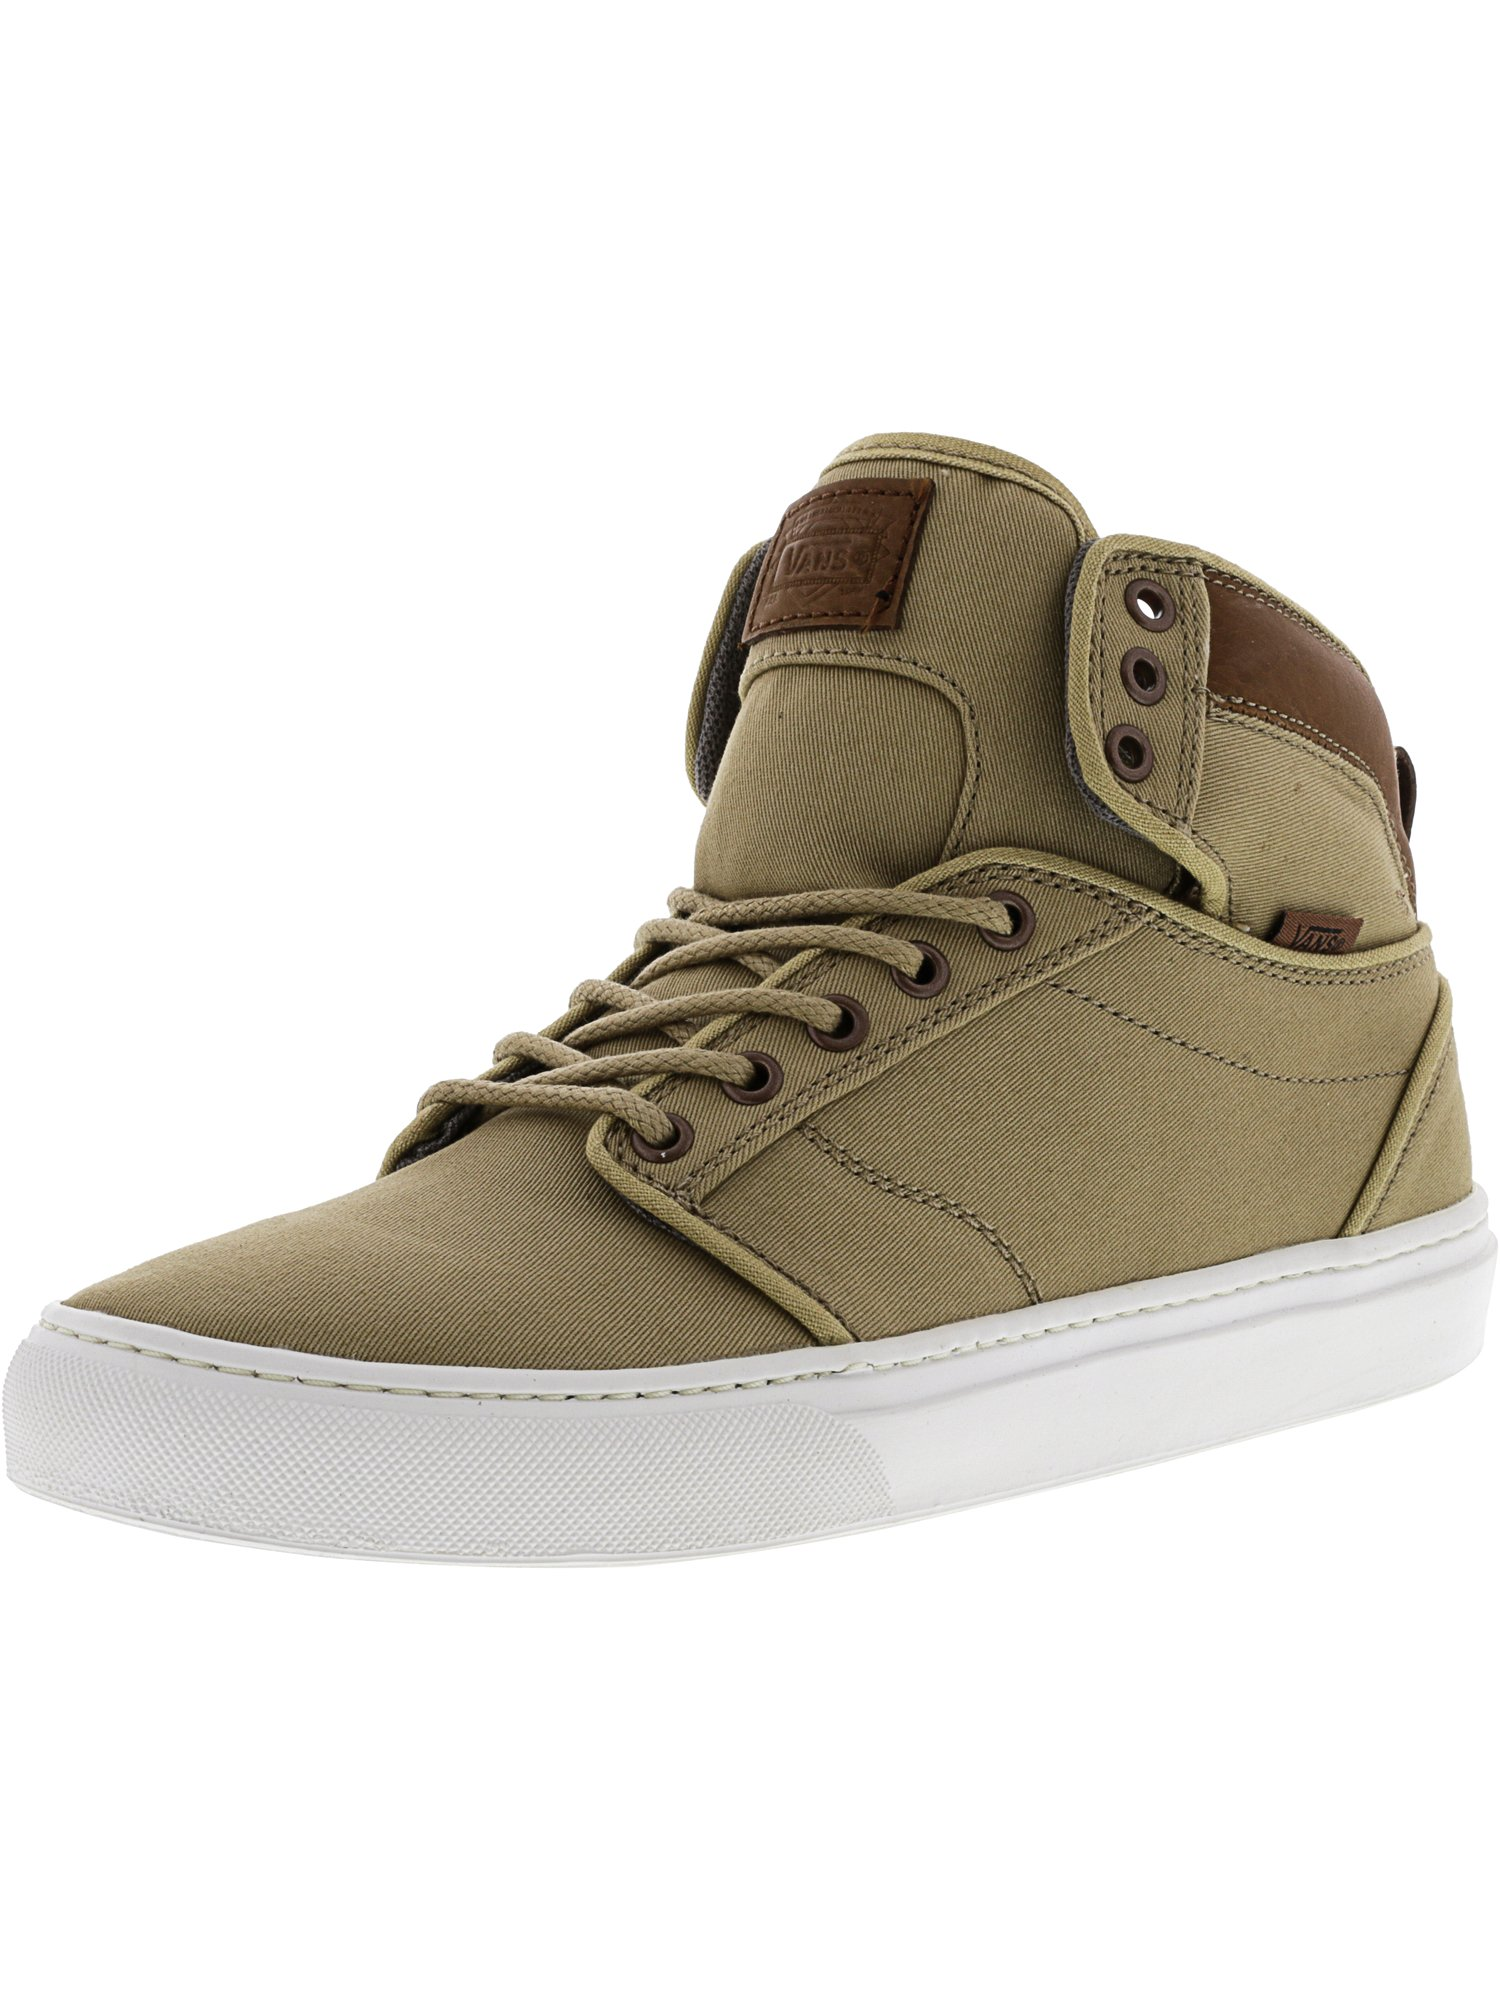 Vans Alomar Textile And Leather Khaki / White High-Top Fabric Skateboarding Shoe - 8.5M 7M